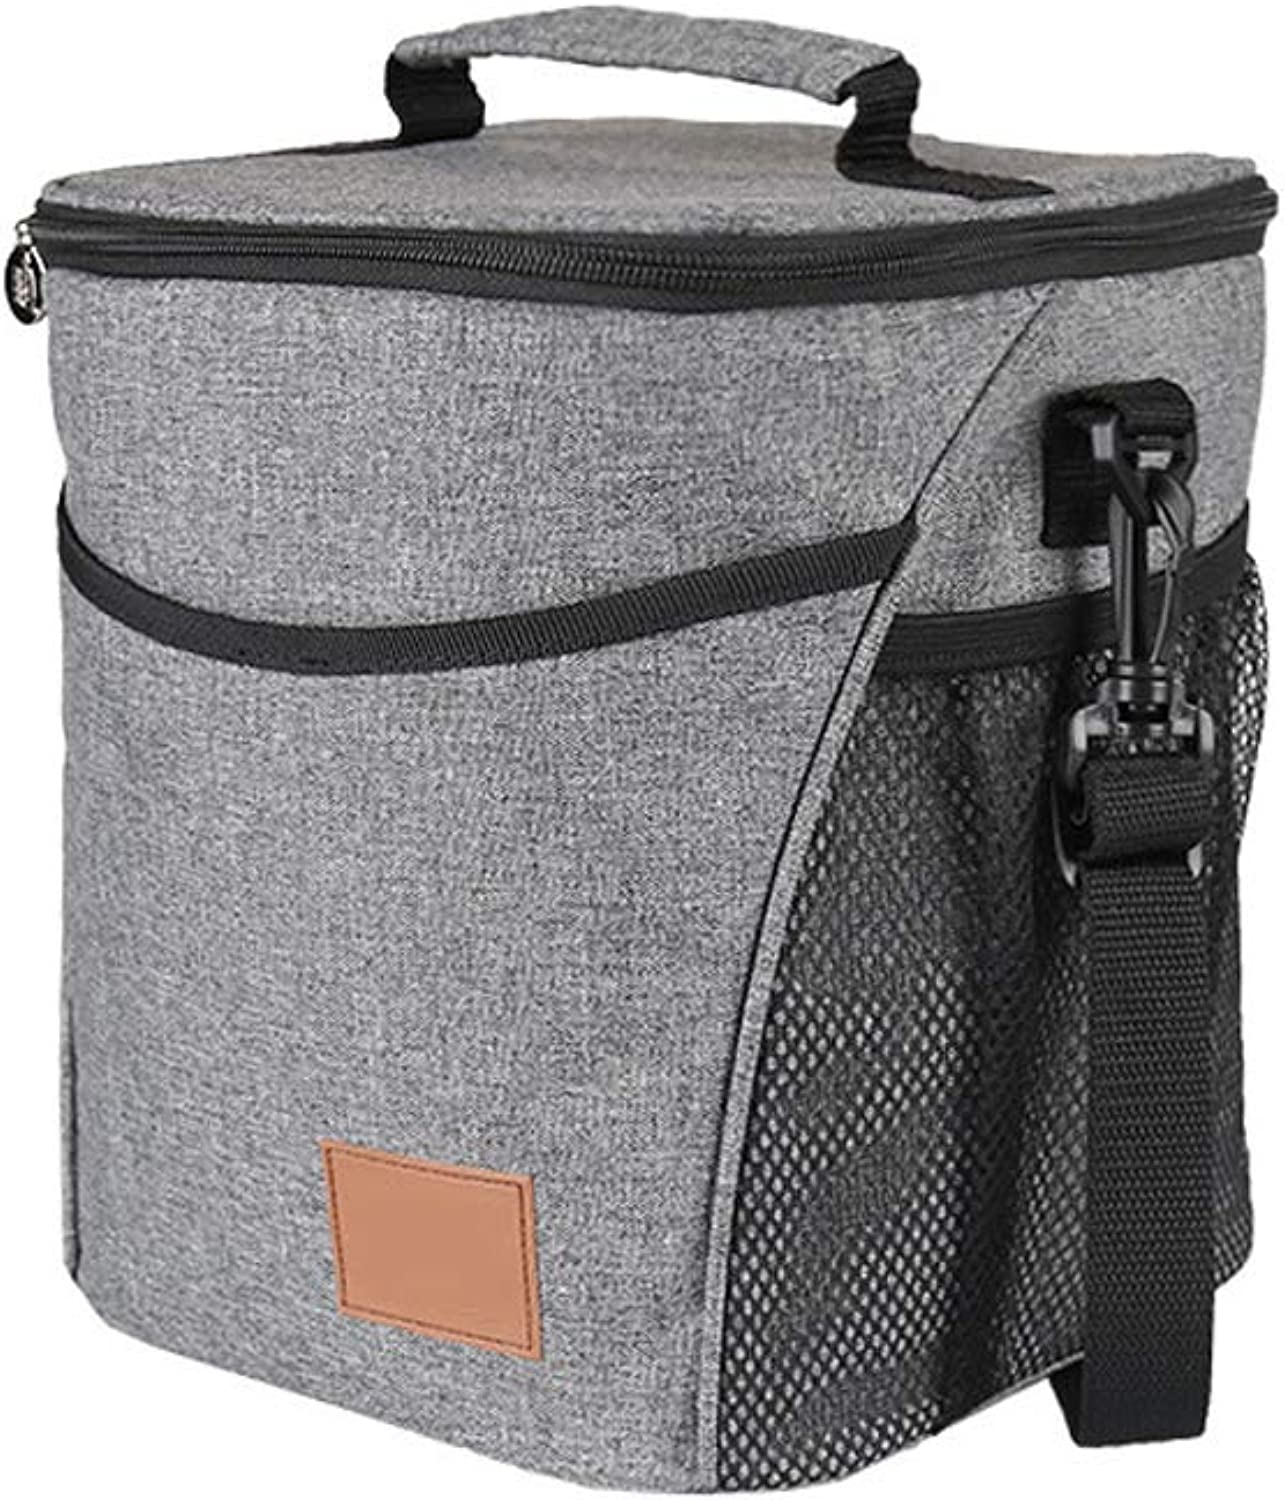 Soft Cooler,SoftSided Collapsible Cooler 9 Liter Insulated Tote Bag Great for Picnics, BBQs, Camping, Tailgating & Outdoor Activities